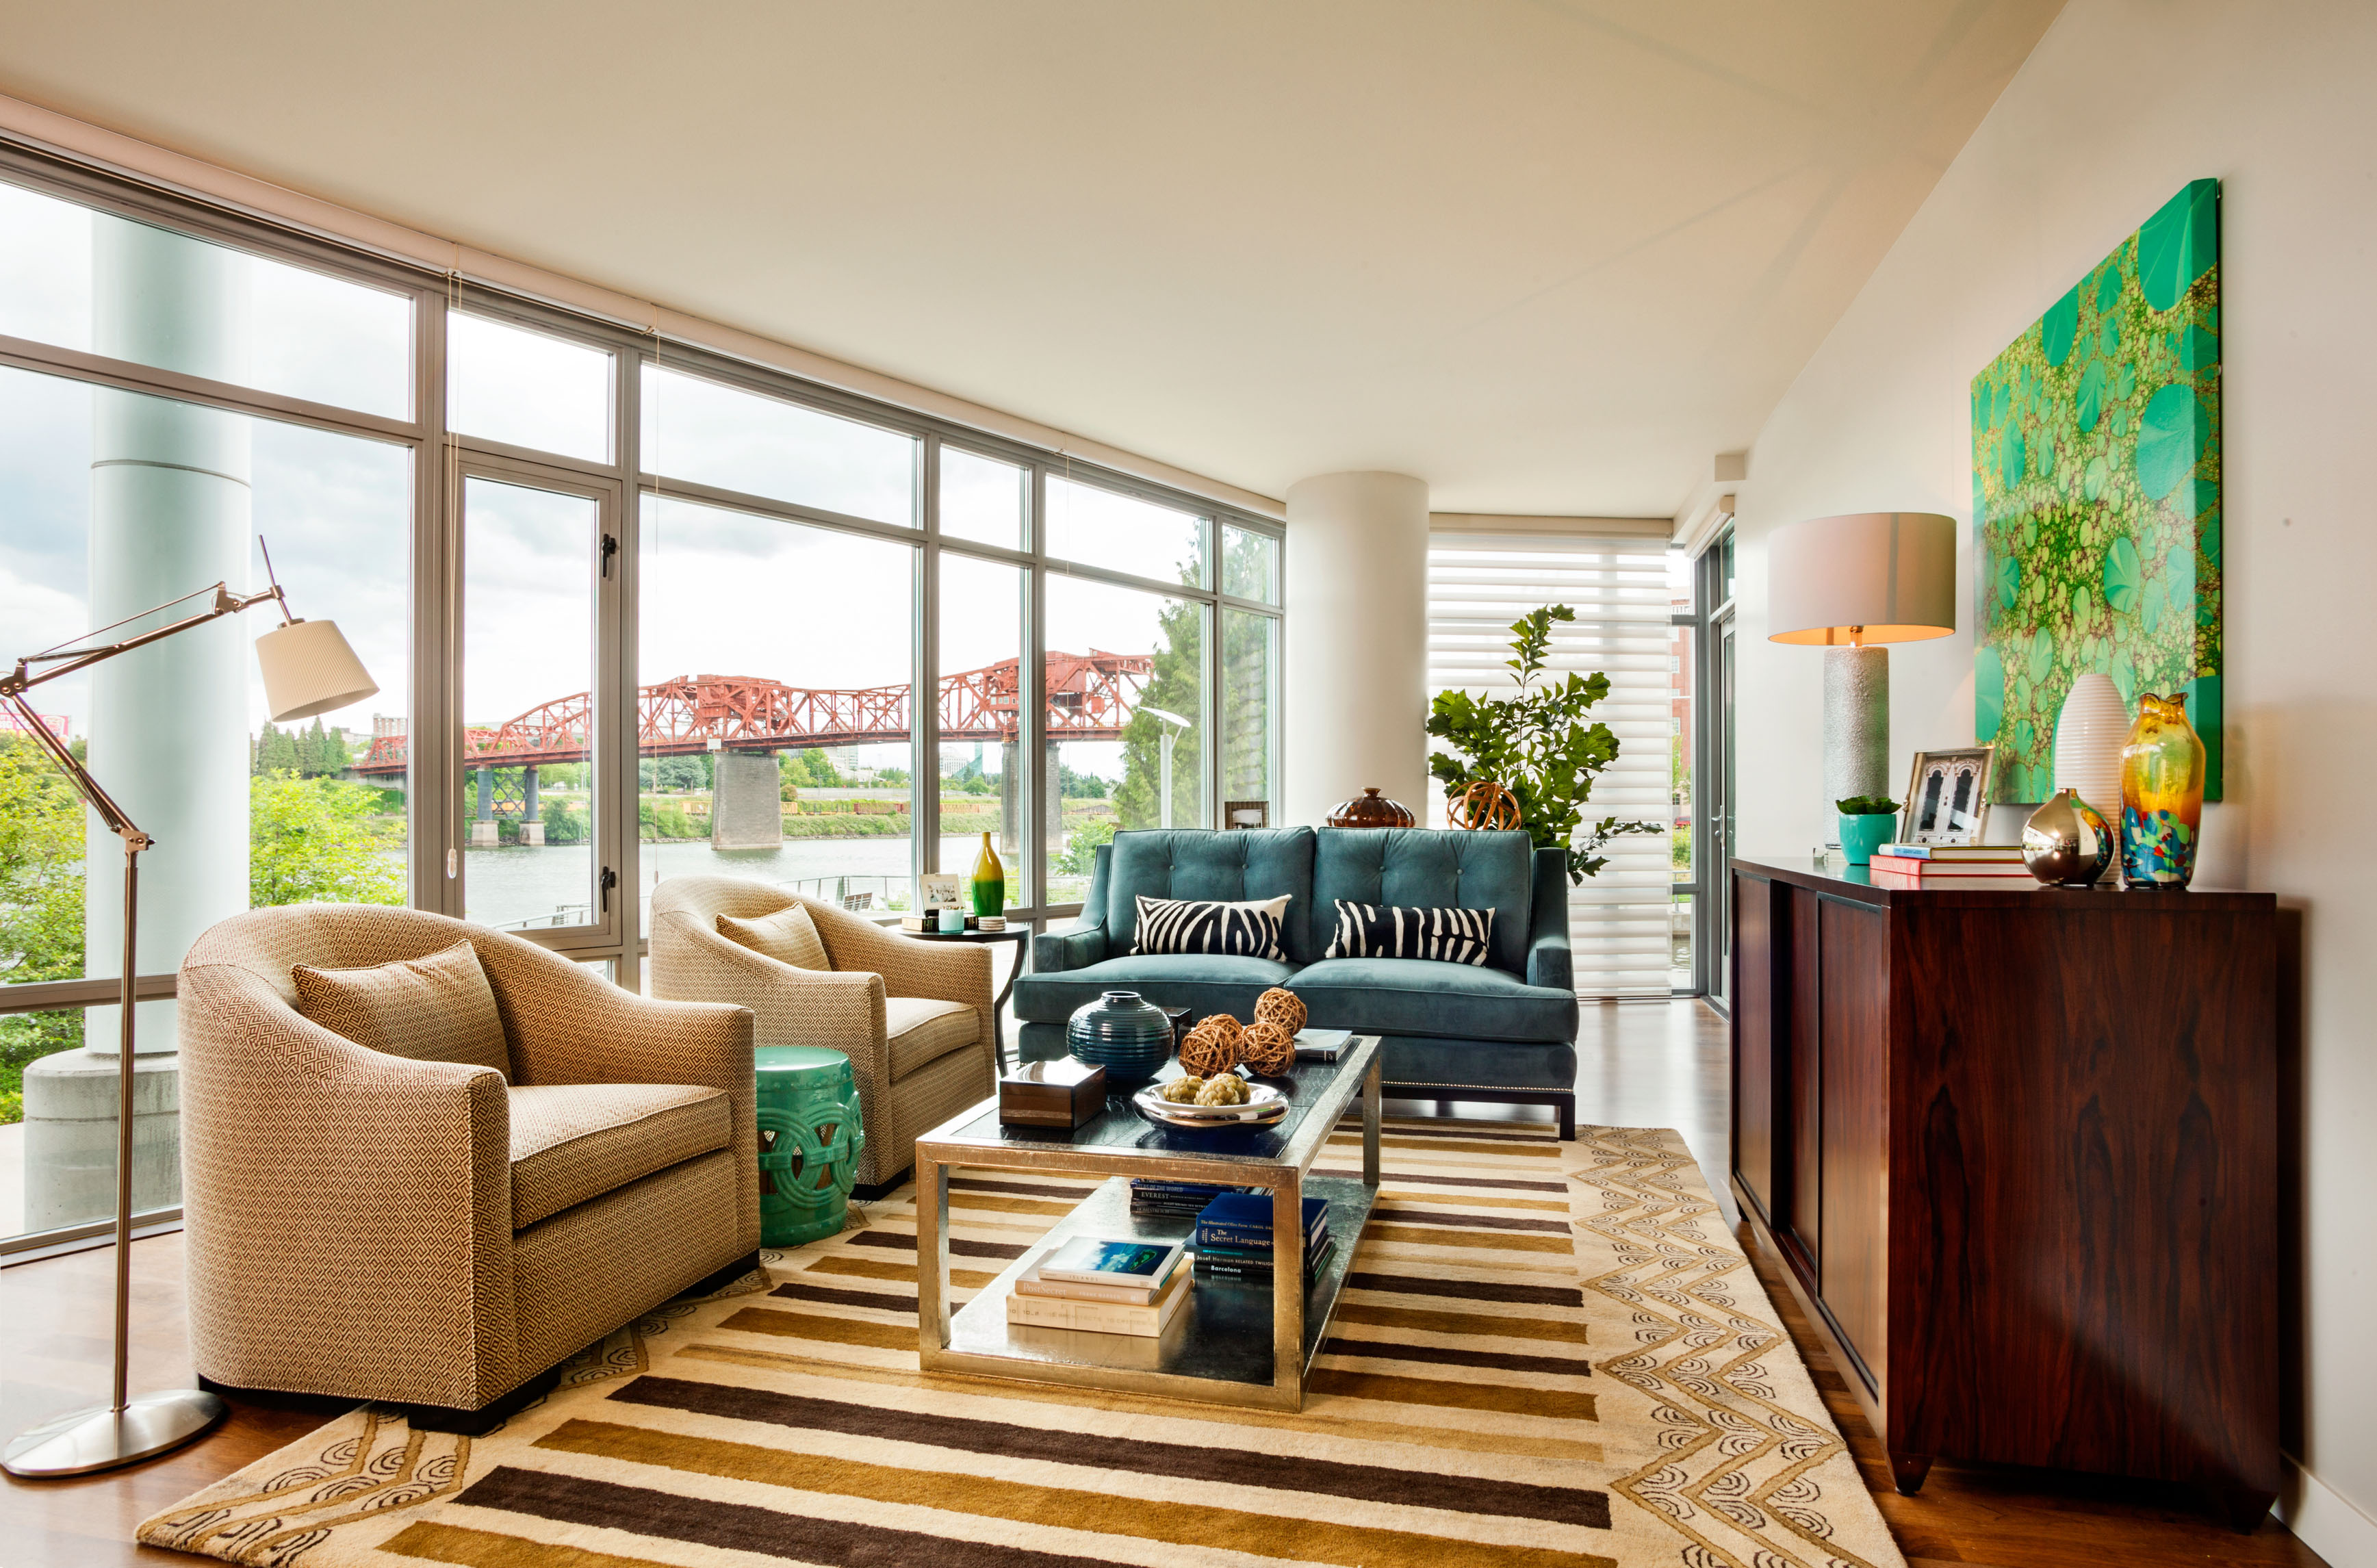 Portland Interior Design Firms: The Portland Interior Designers Of Garrison Hullinger